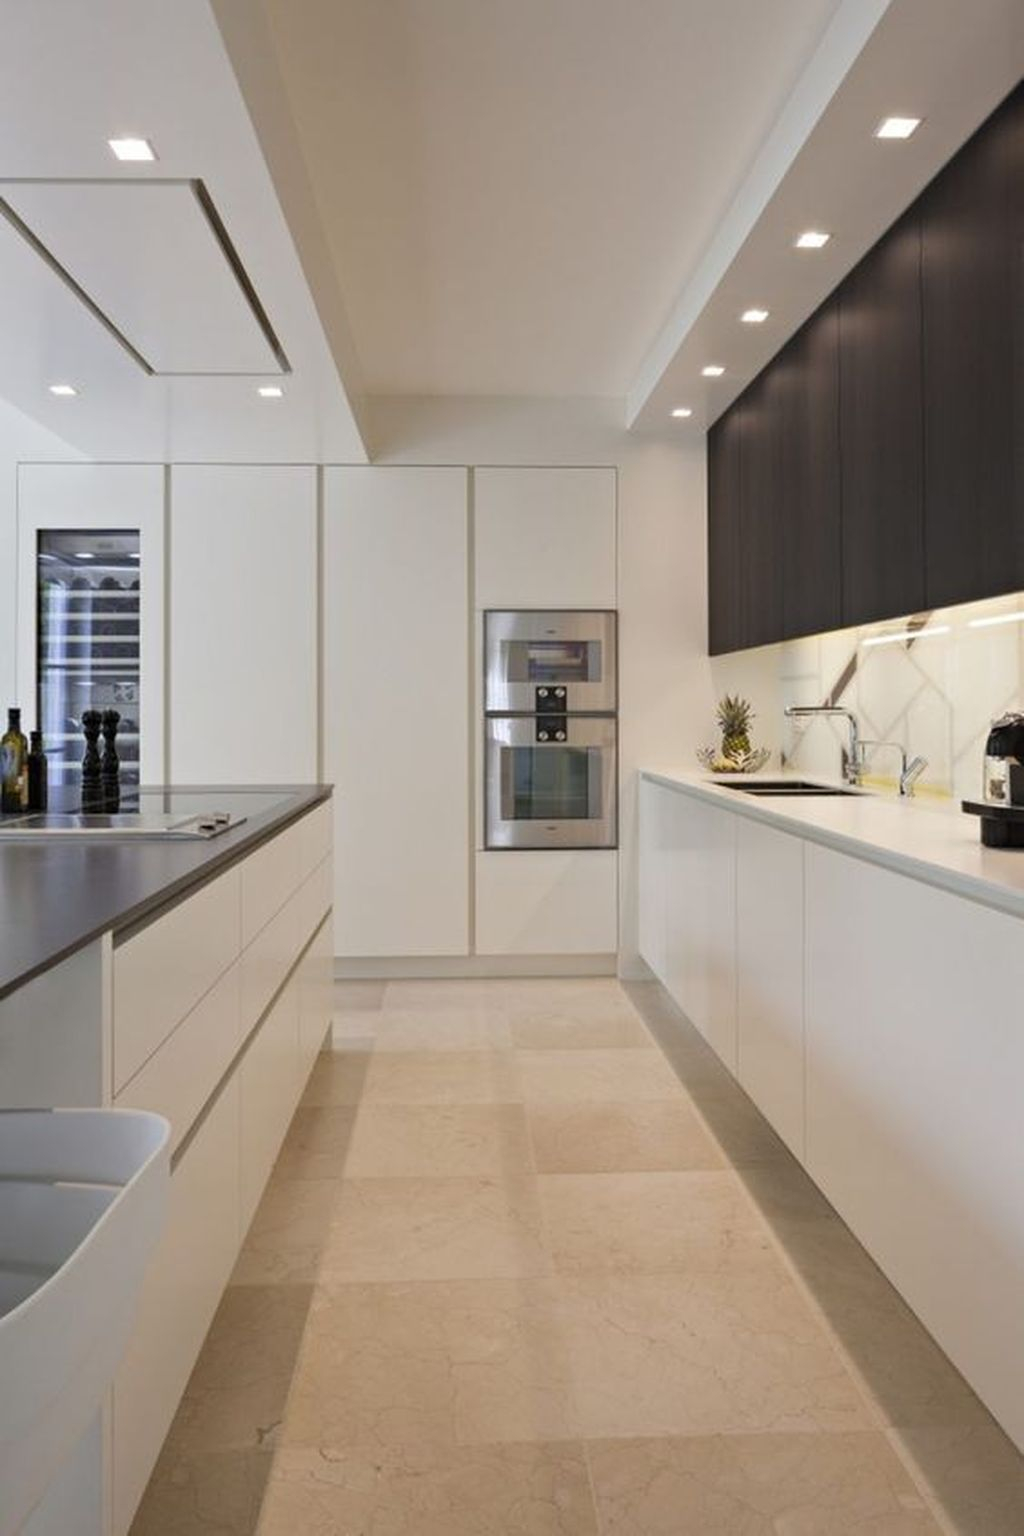 Elegant Minimalist Kitchen Design Ideas For Small Space To Try 17